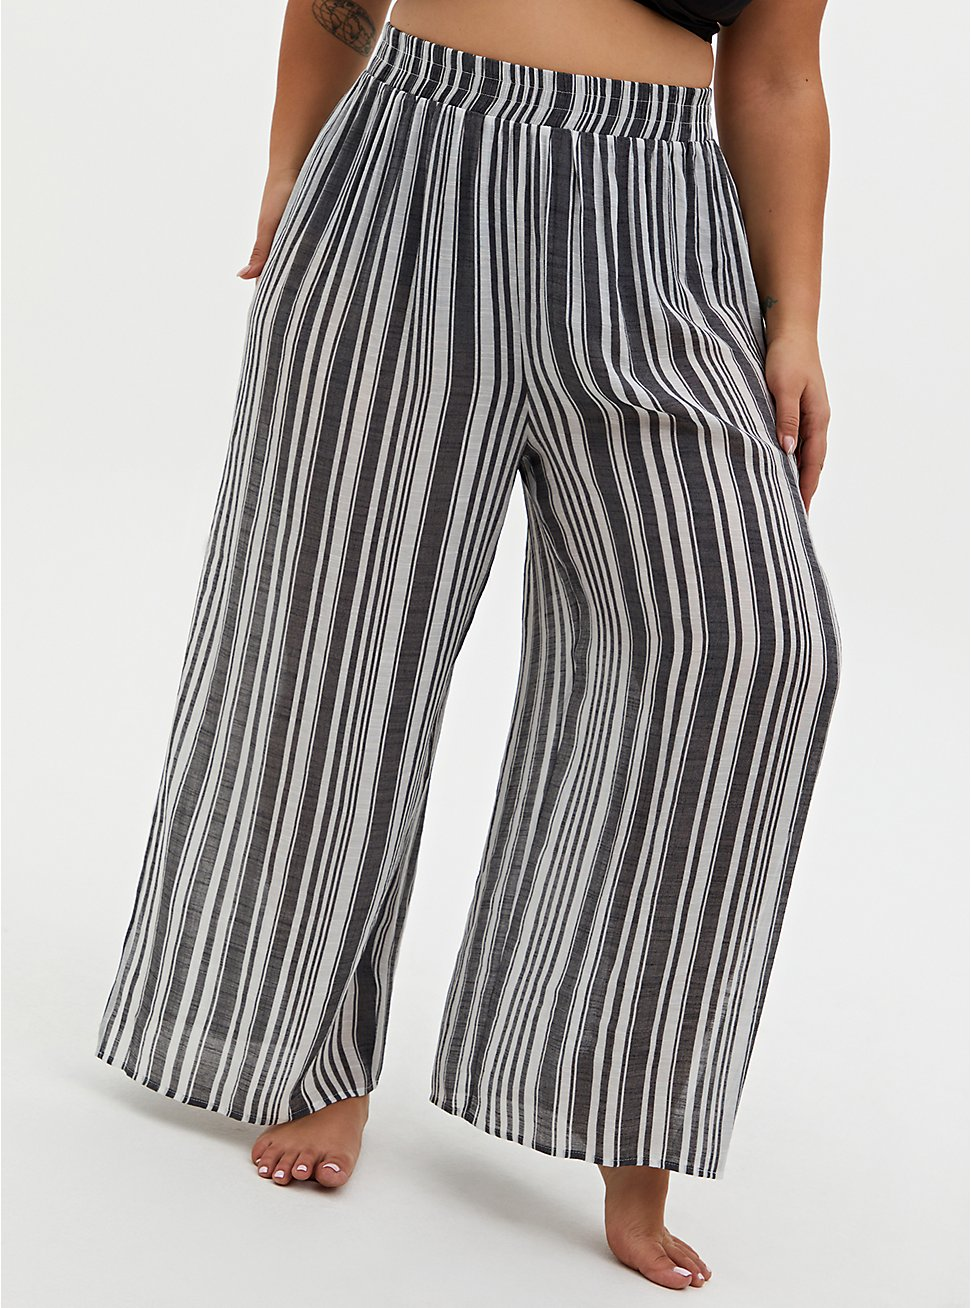 Black & White Crinkled Gauze Stripe Side Slit Pant Swim Cover-Up, MULTI, hi-res